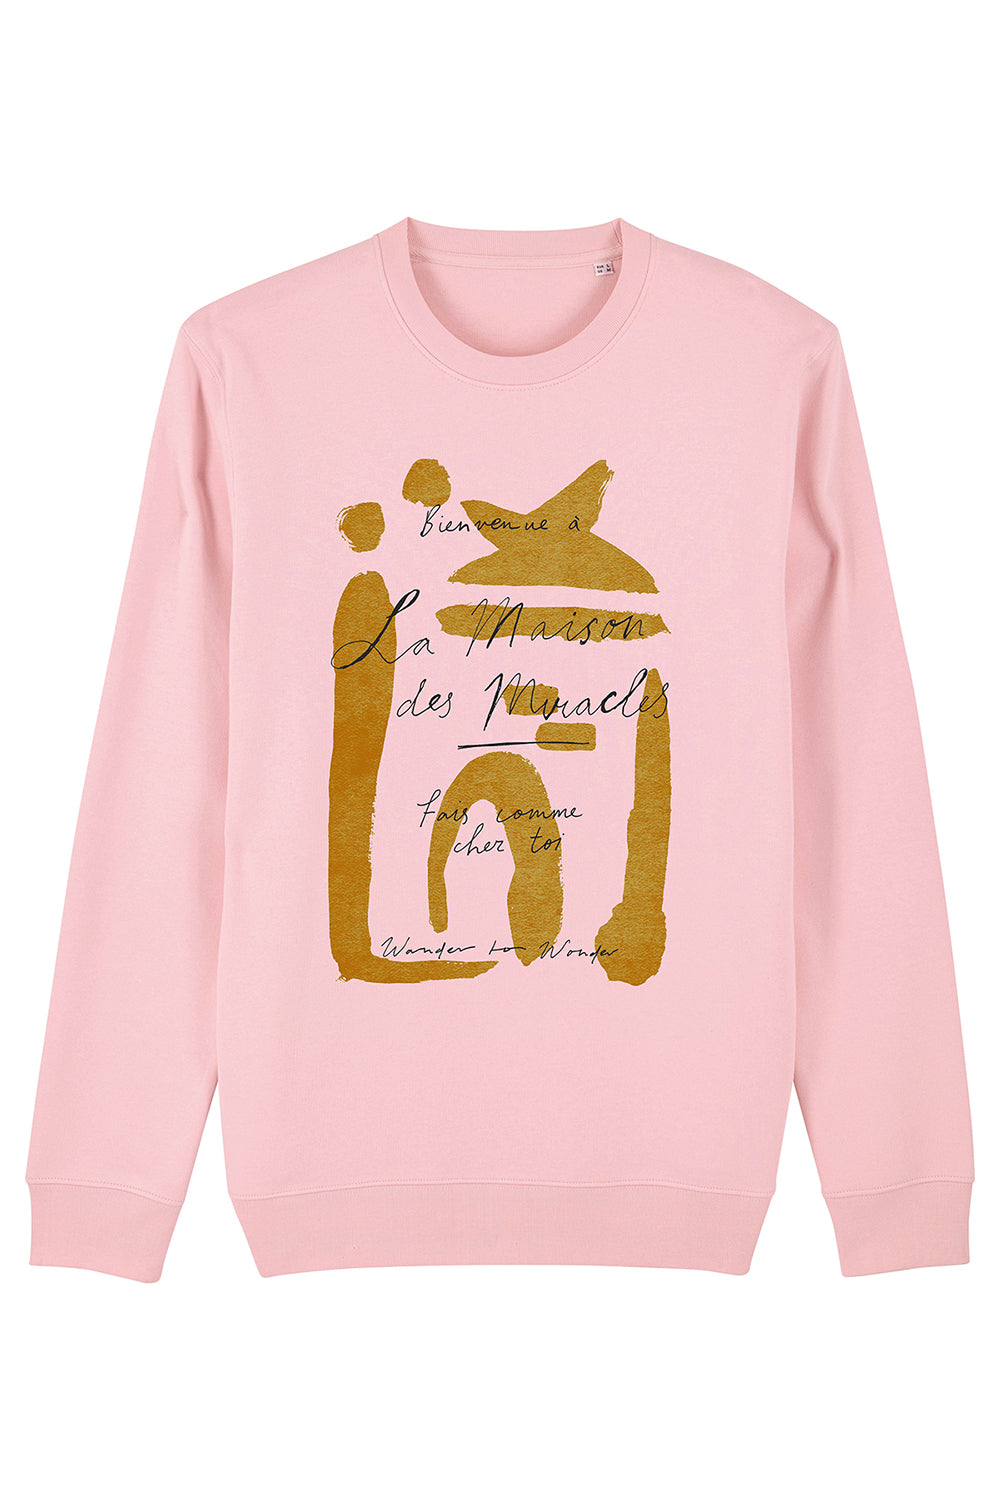 Maison des Miracles Sweater (Crush)